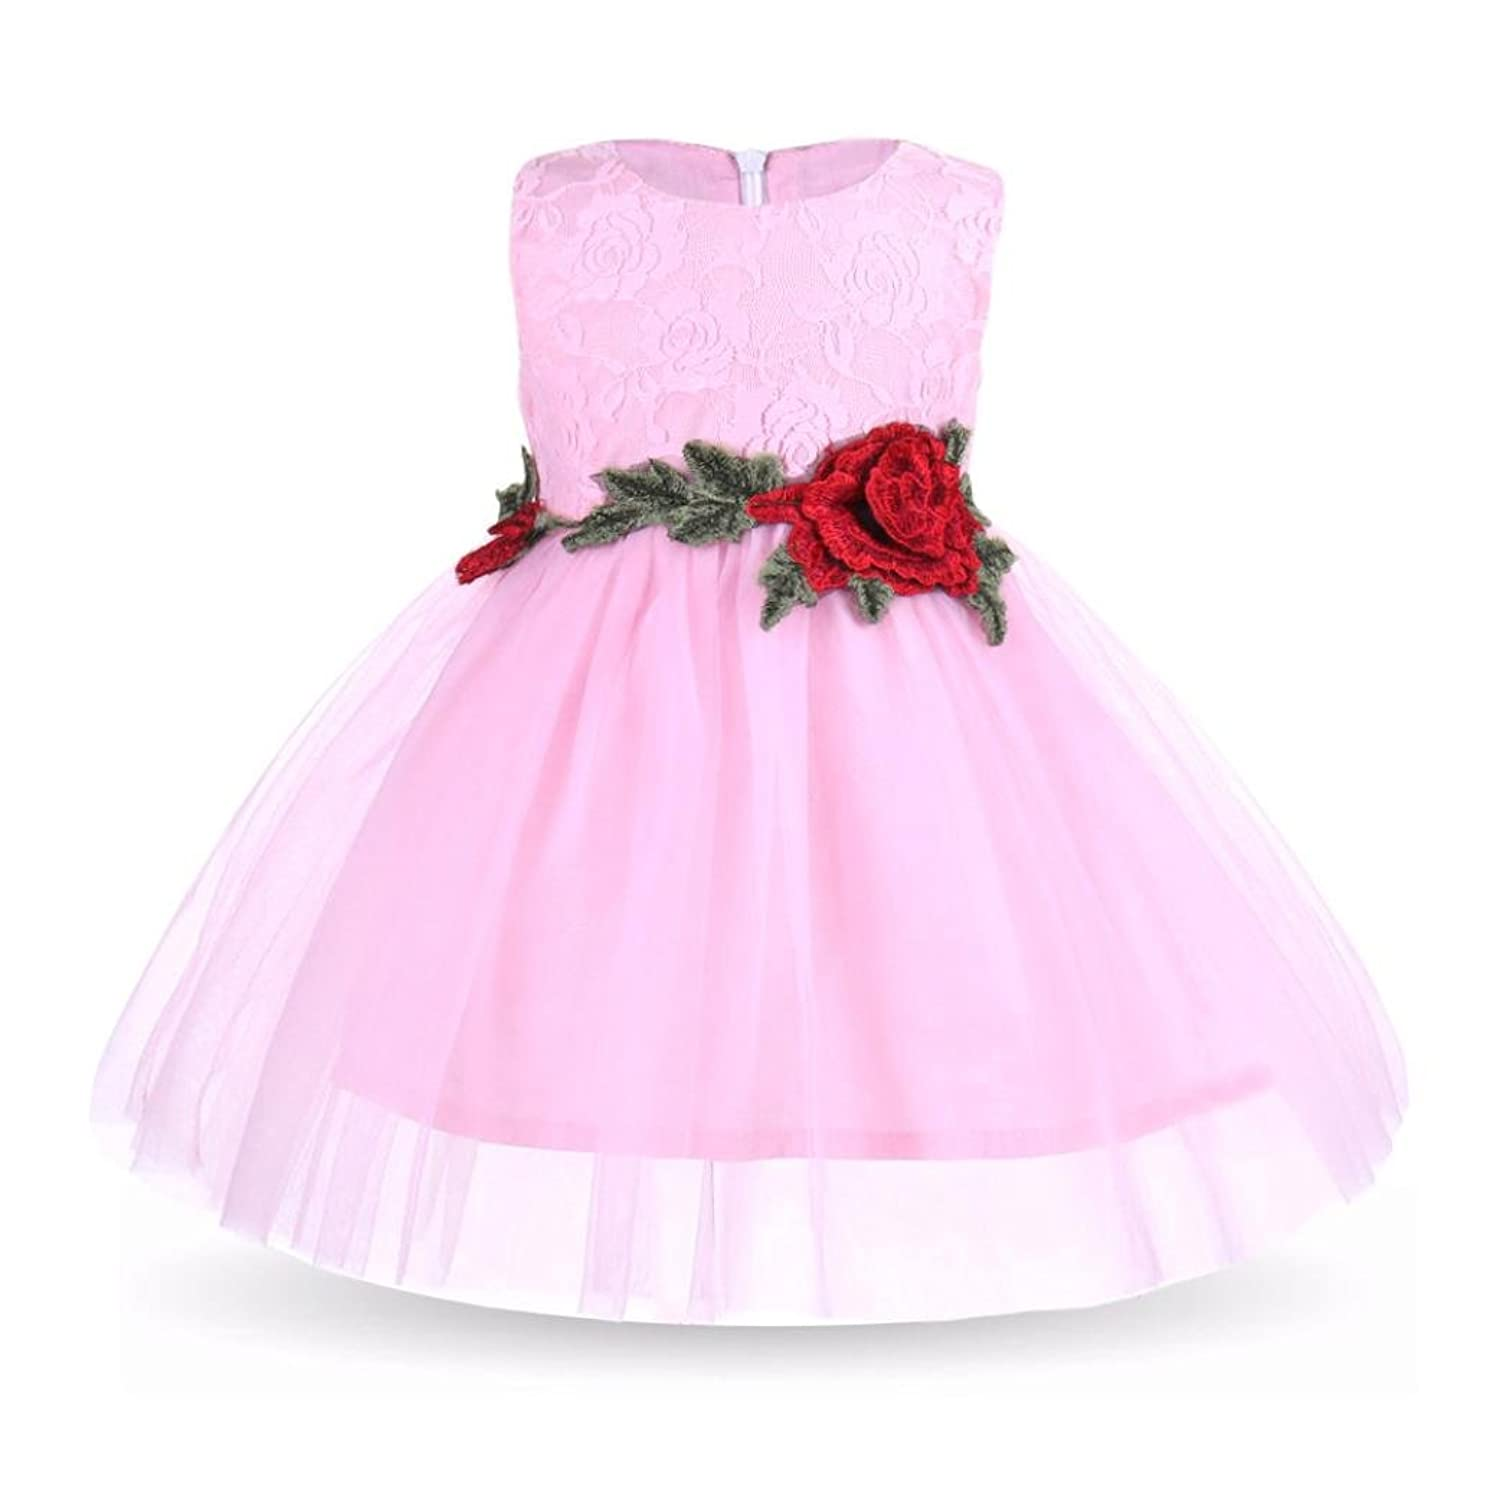 Sunbibe 1-5 Years Old Toddler Outfits Baby Princess Dress Girls Cute ...